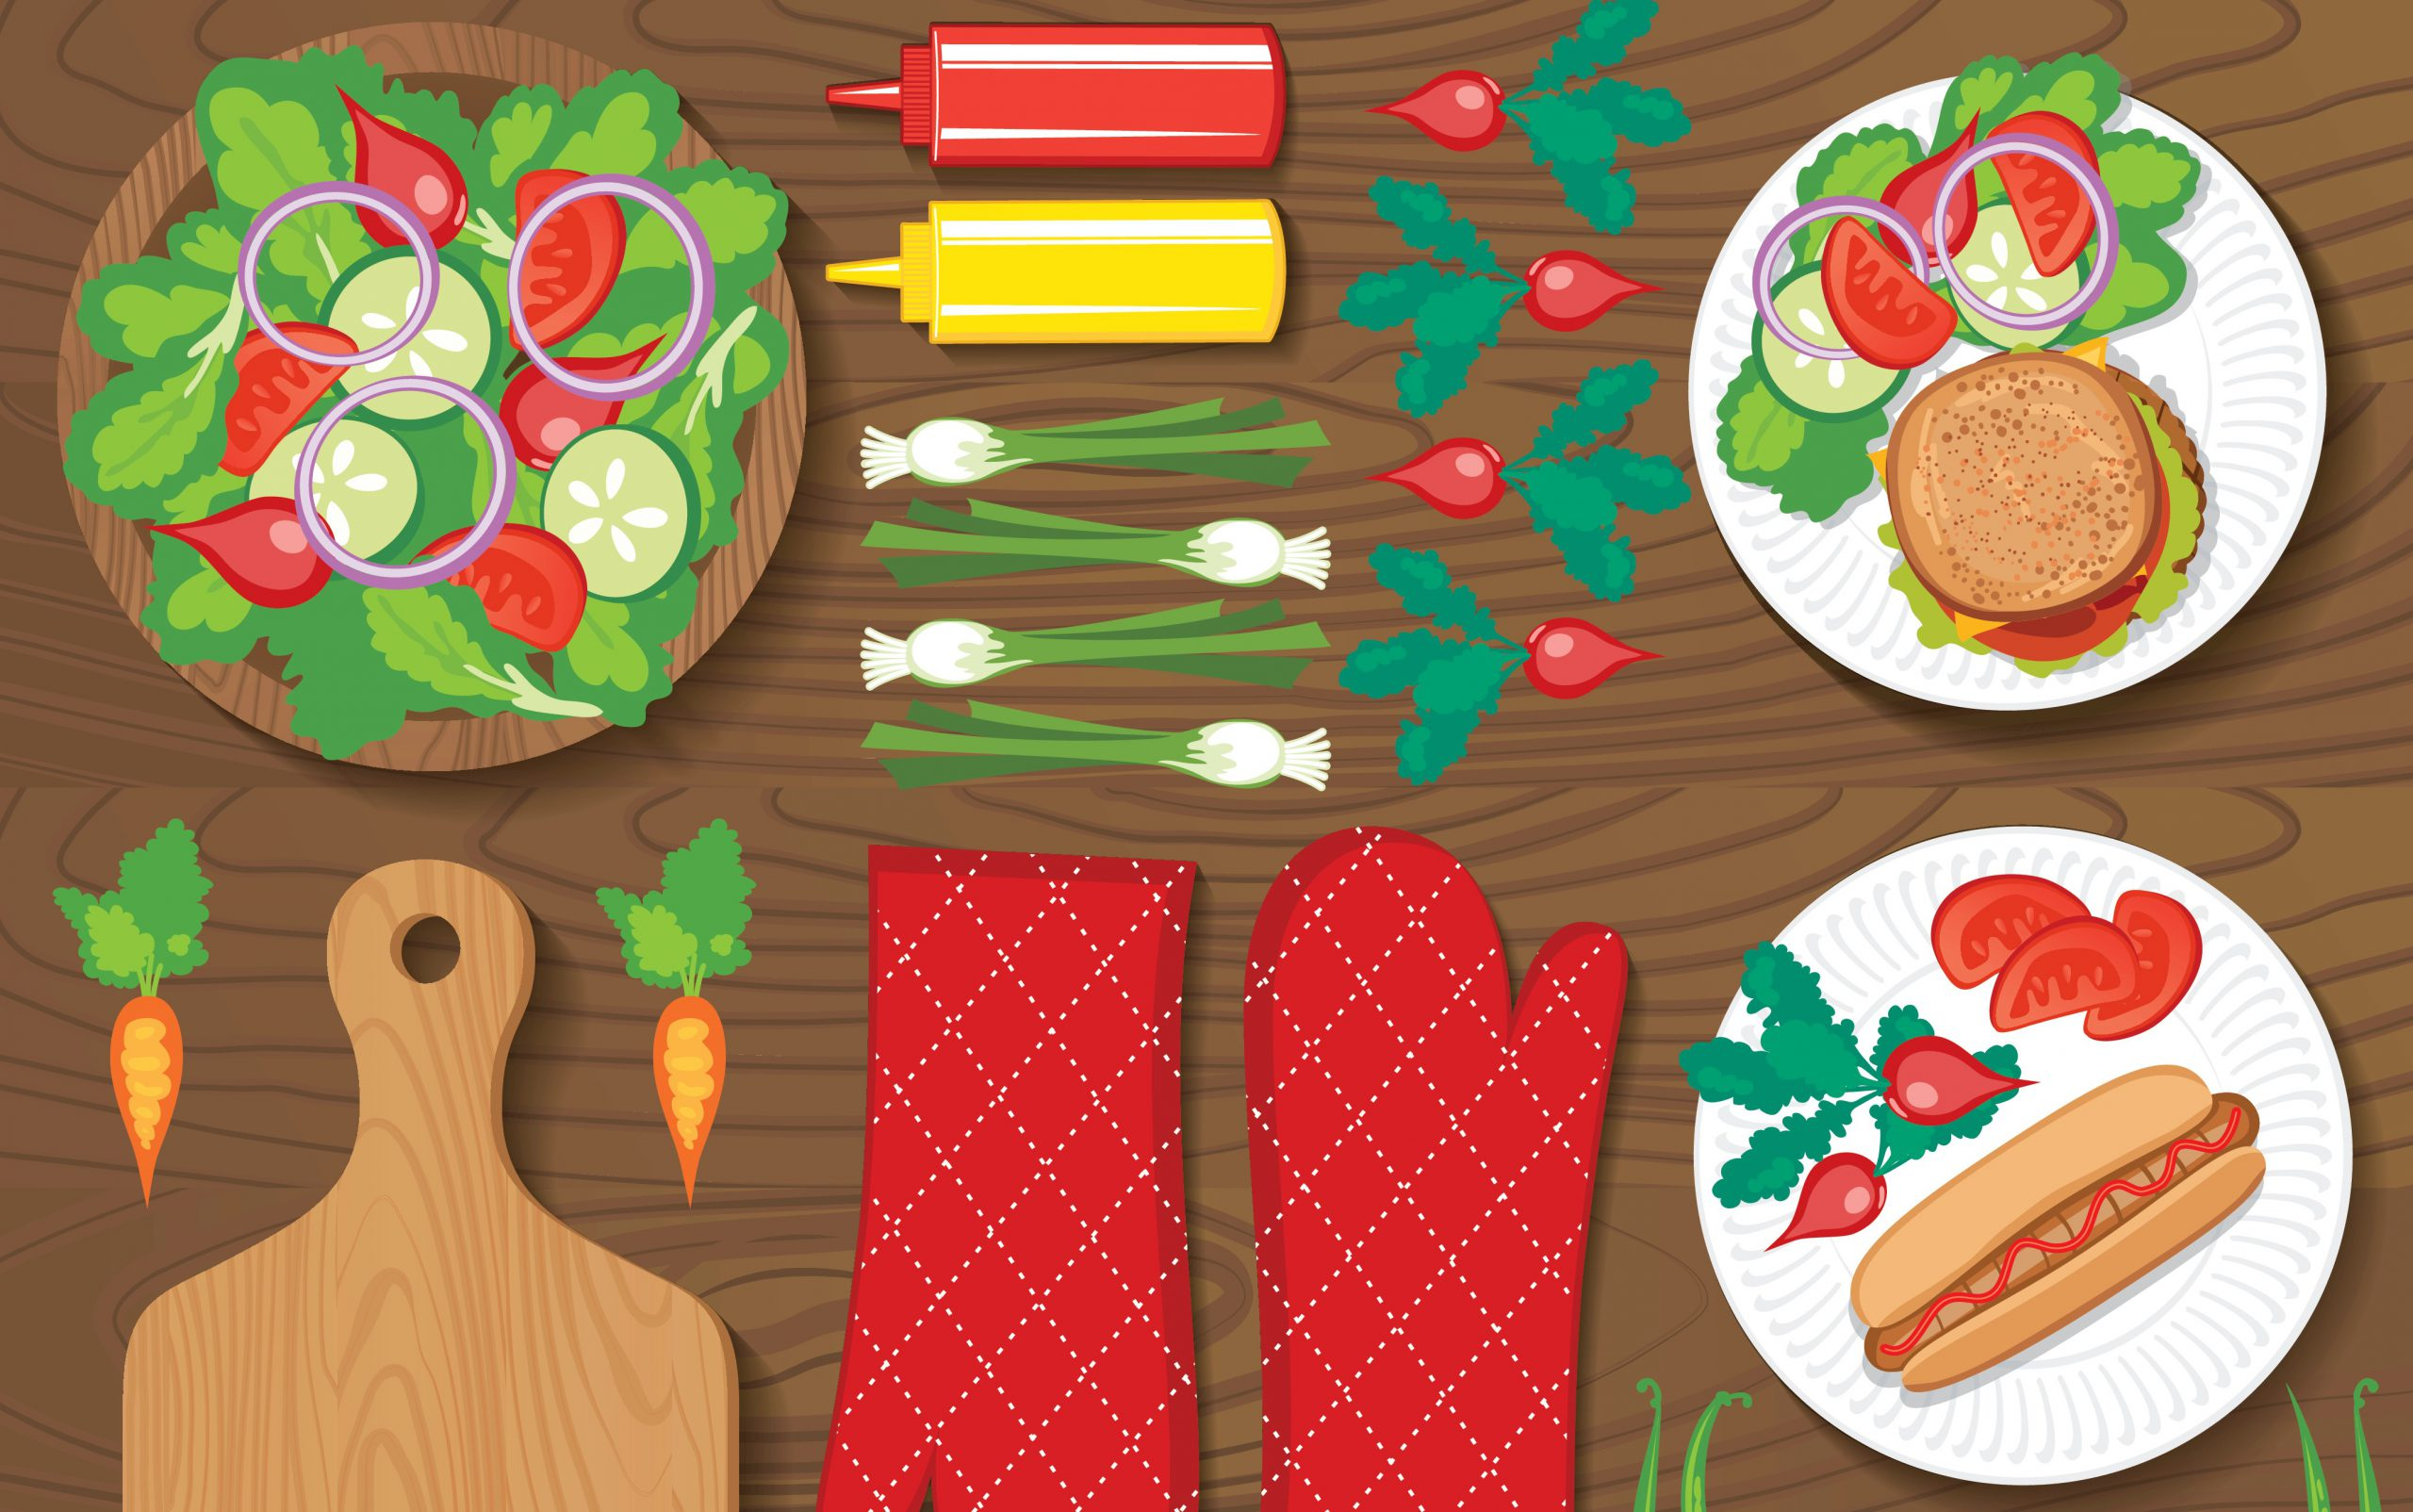 Illustration of salad bowl, hamburger, and hot dog arranged on a picnic table with condiments and oven mitts.